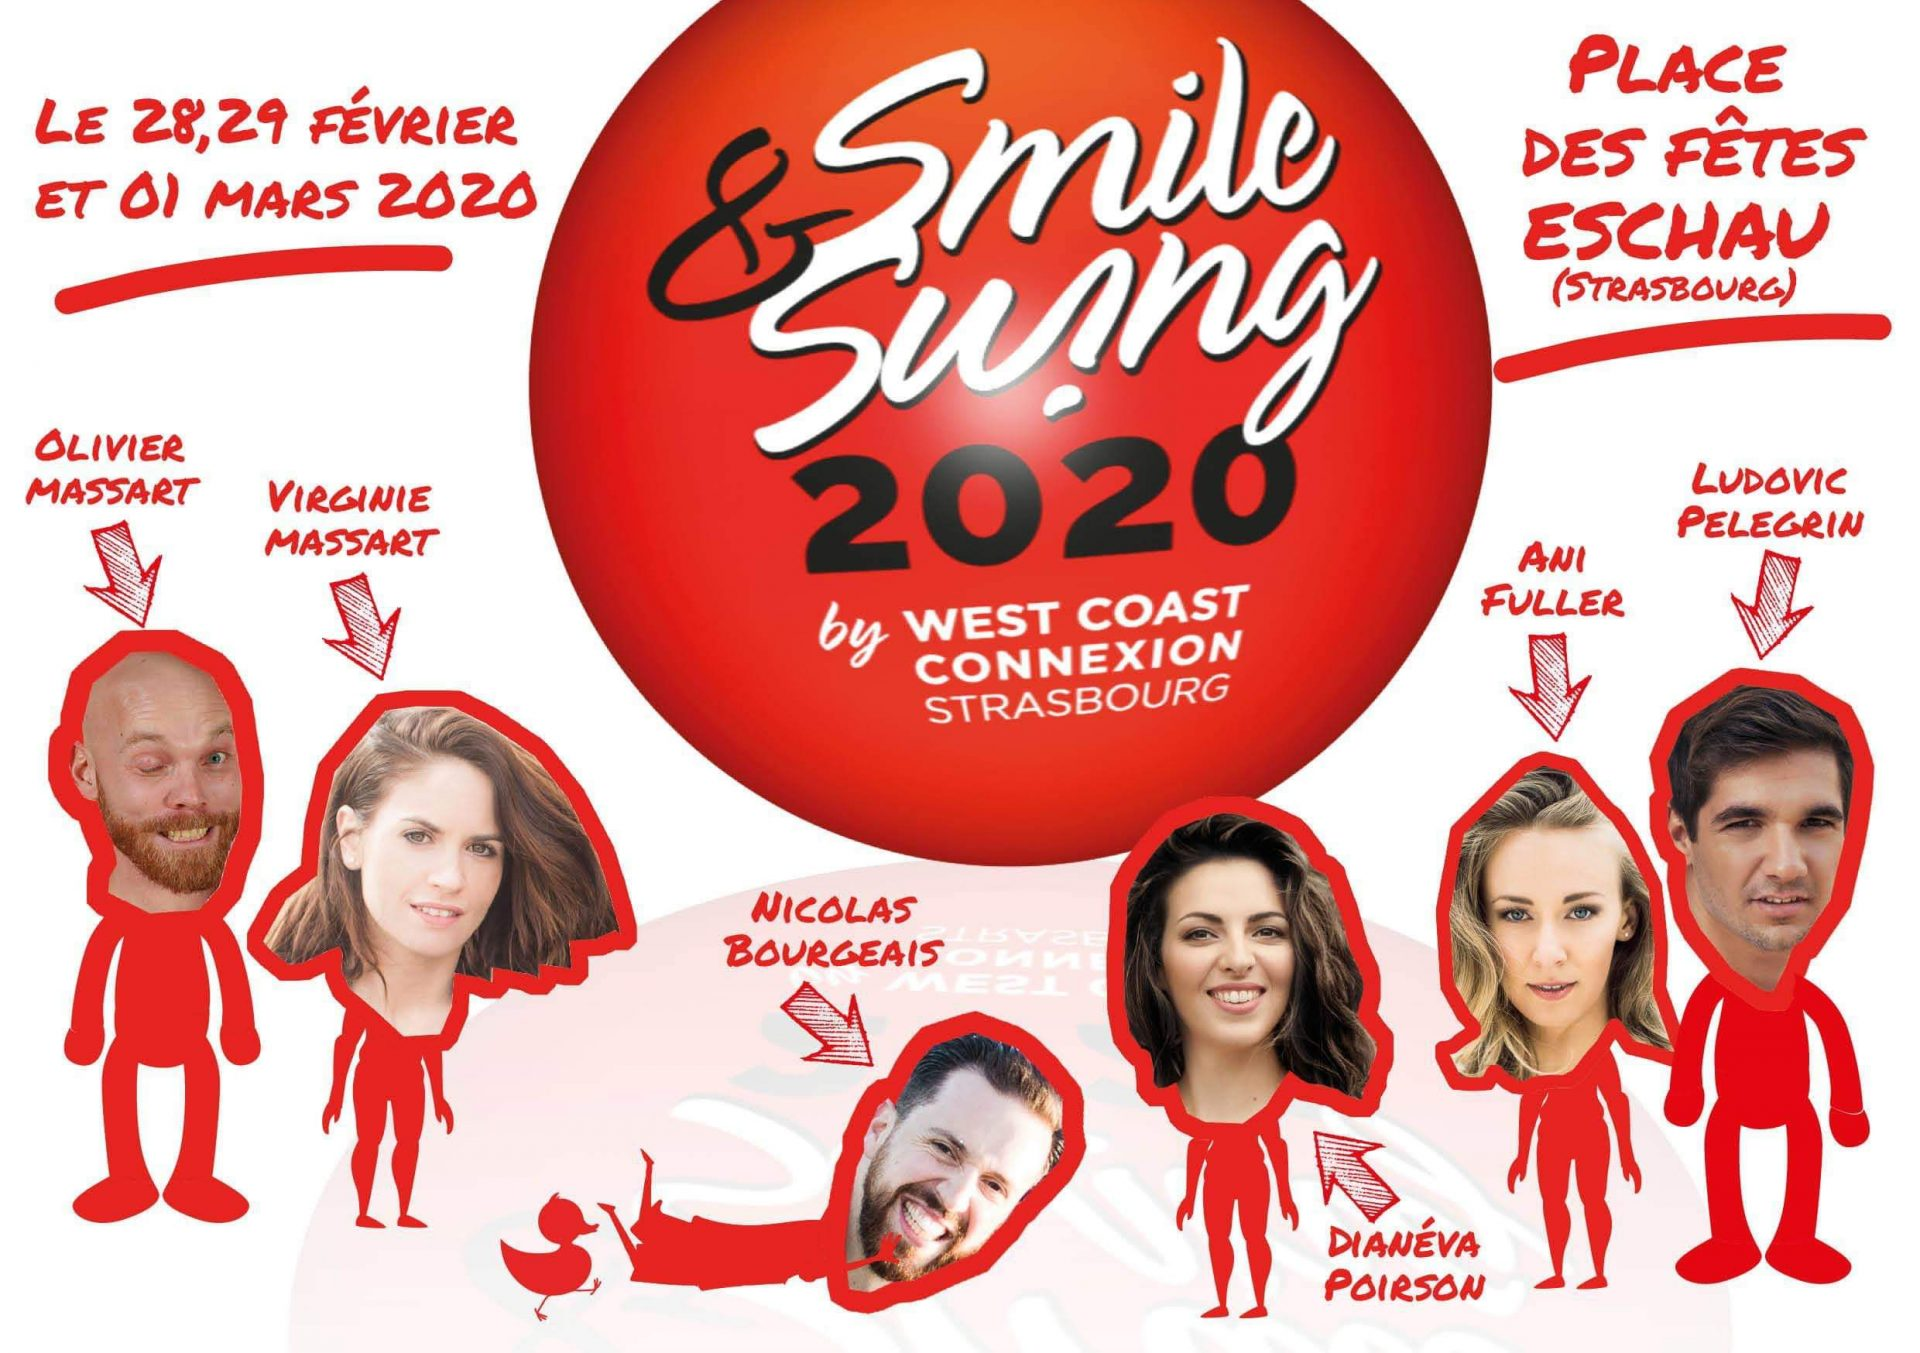 Visuel Smile & Swing 2020